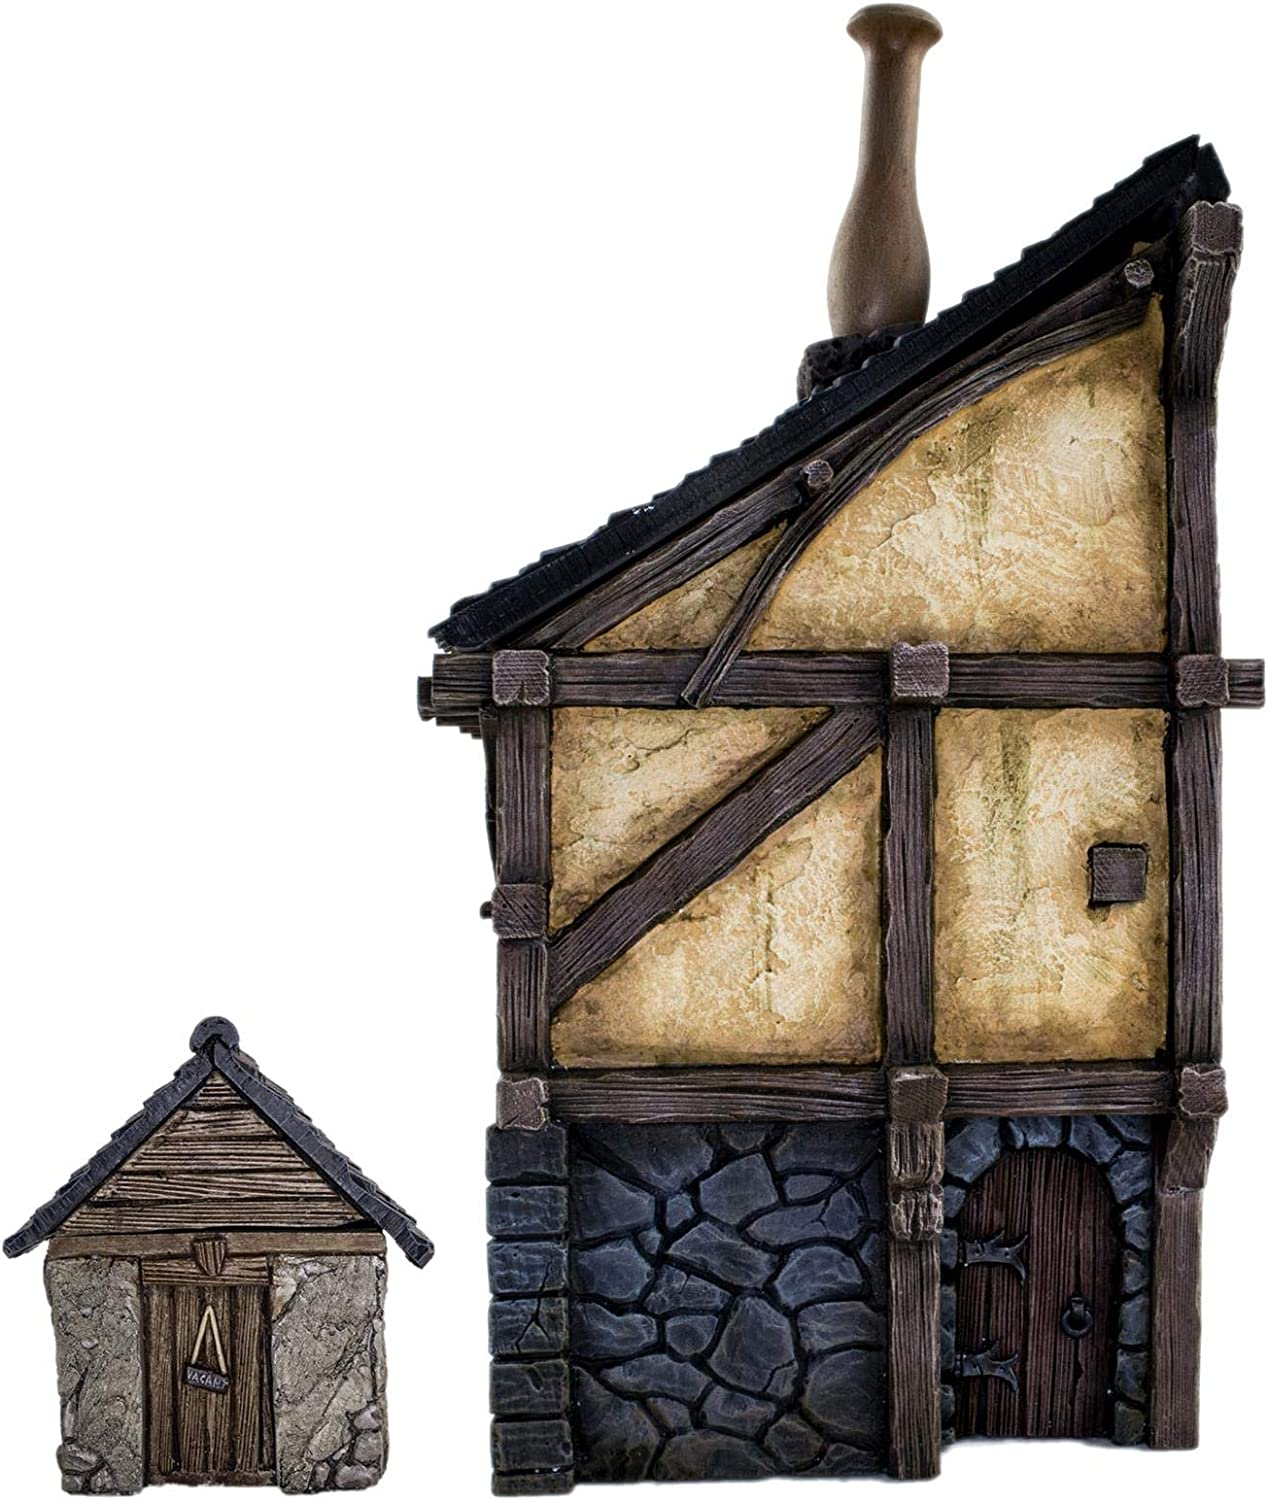 WWG Fantasy Village House and Outhouse – 28mm Medieval Wargaming Terrain Model Scenery